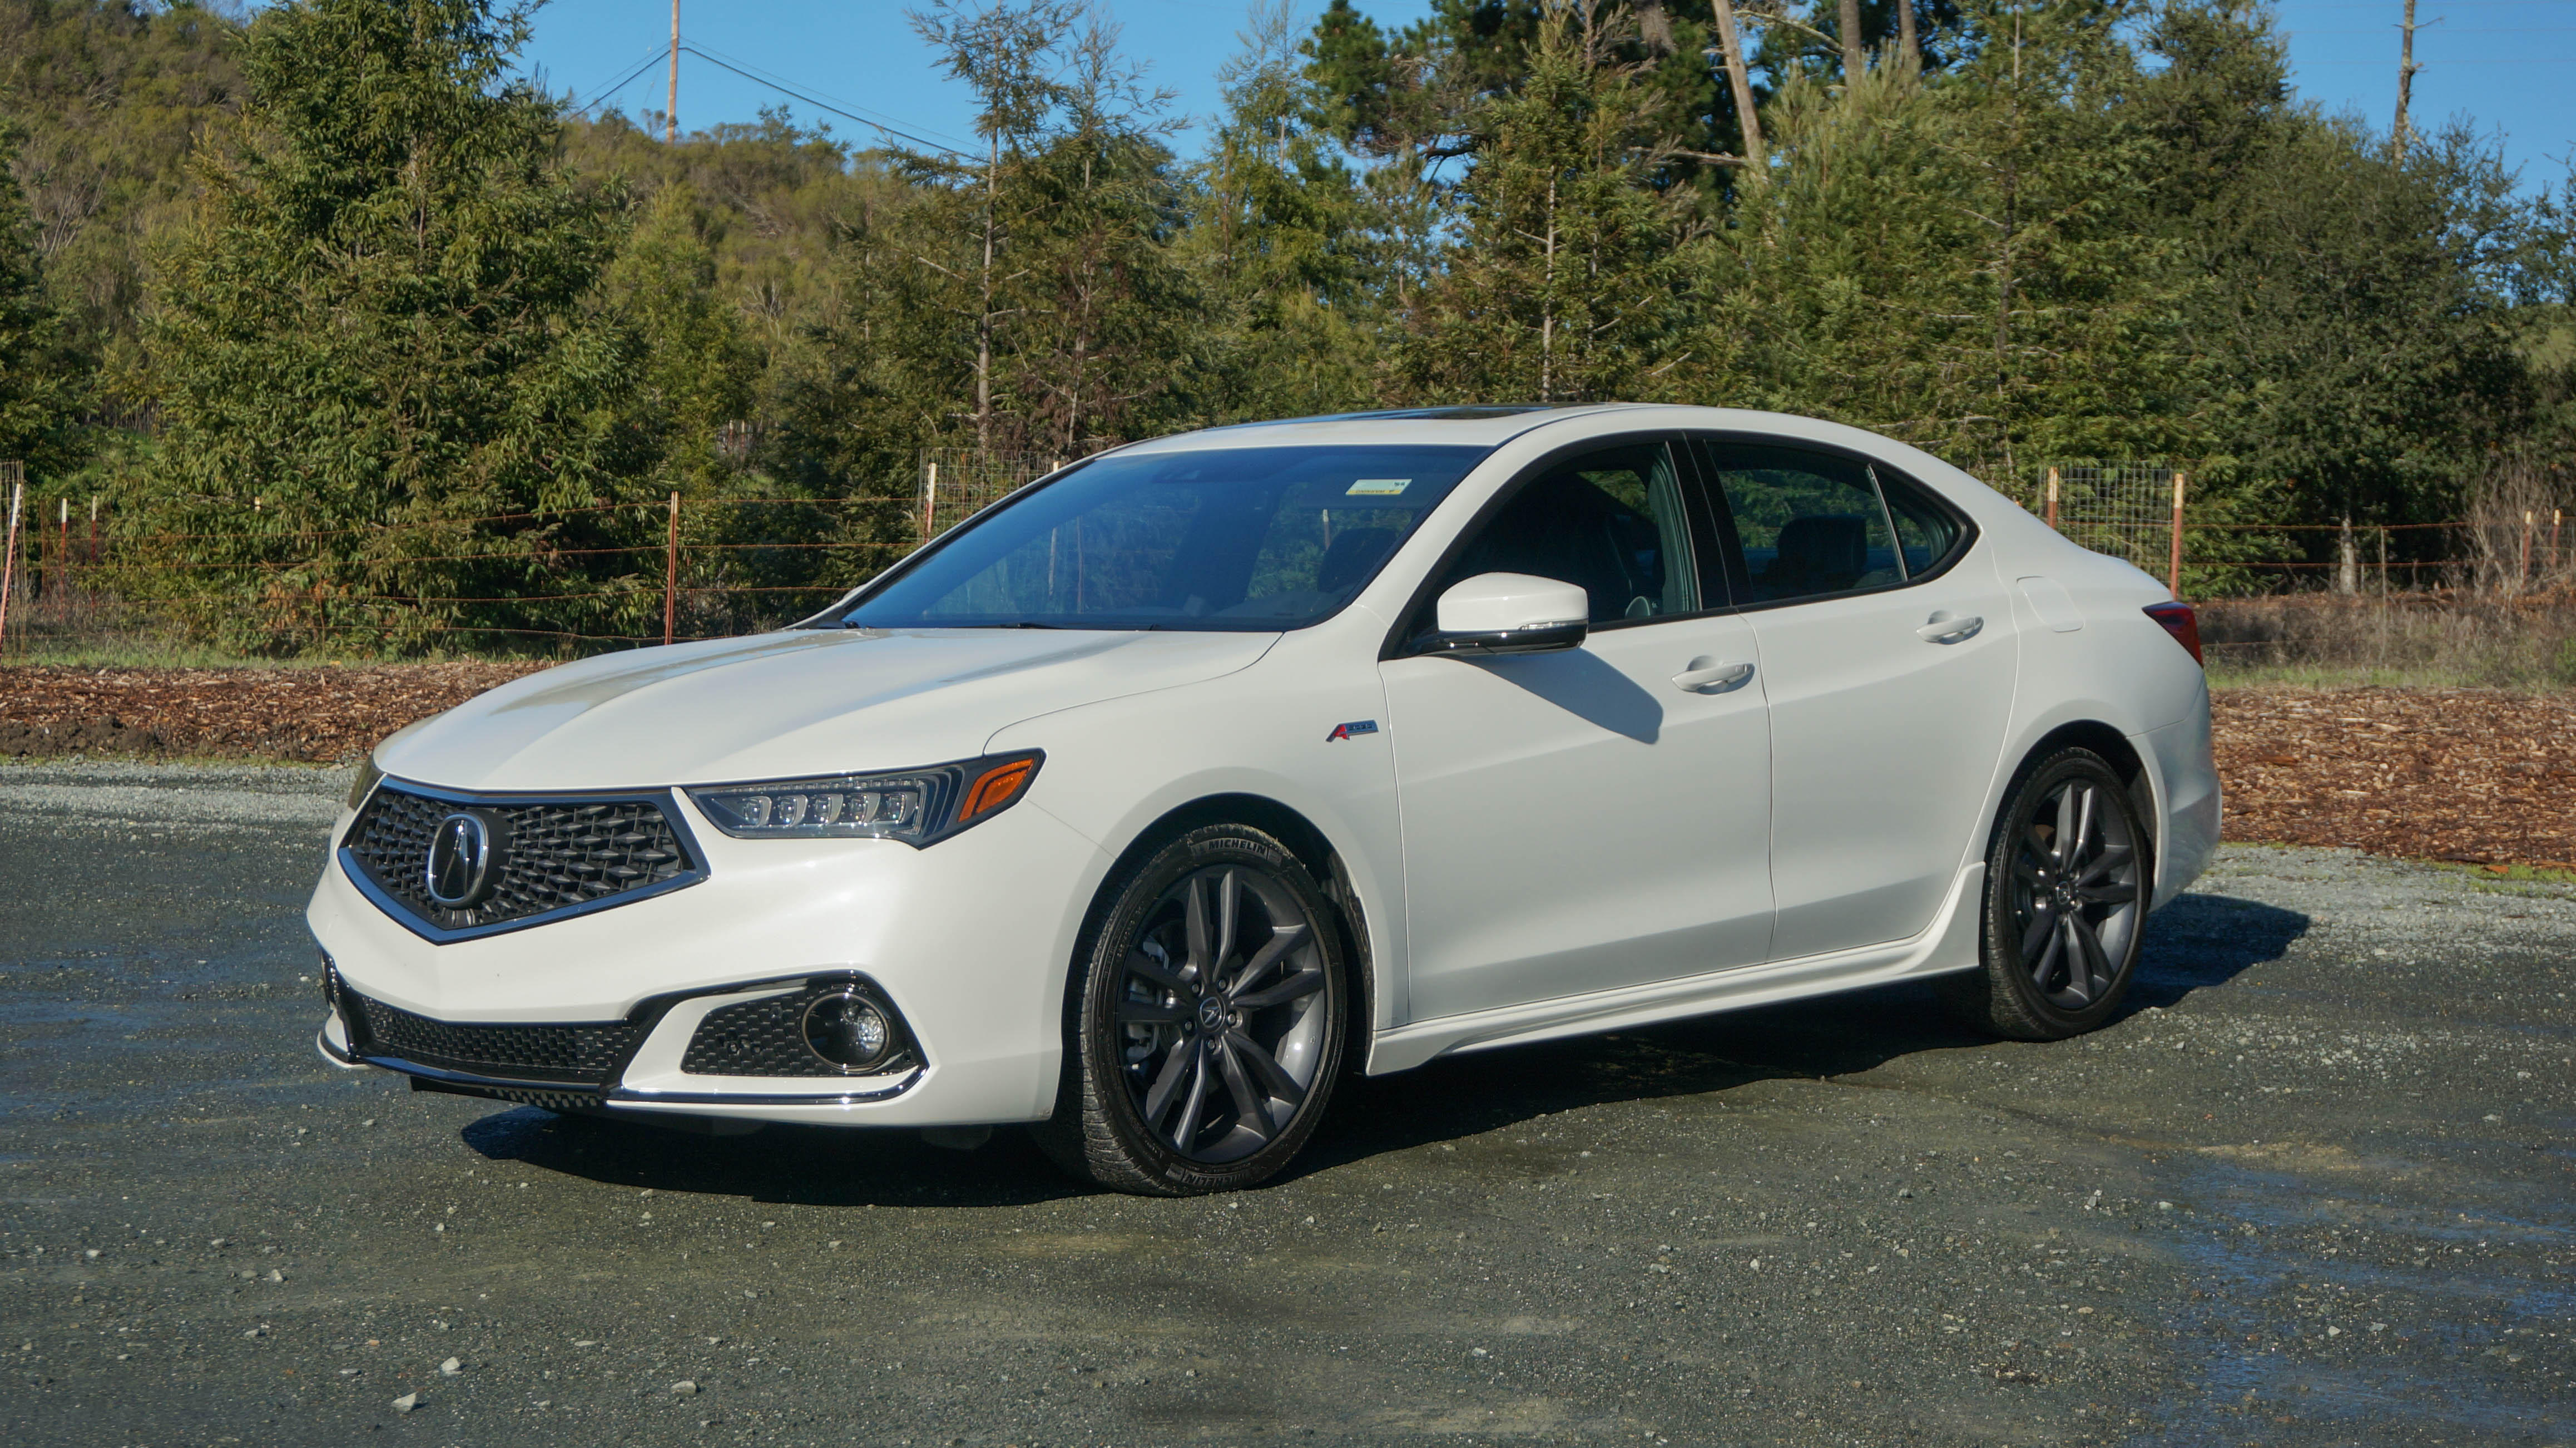 20 Acura TLX A Spec review ratings, specs, photos, price and ...